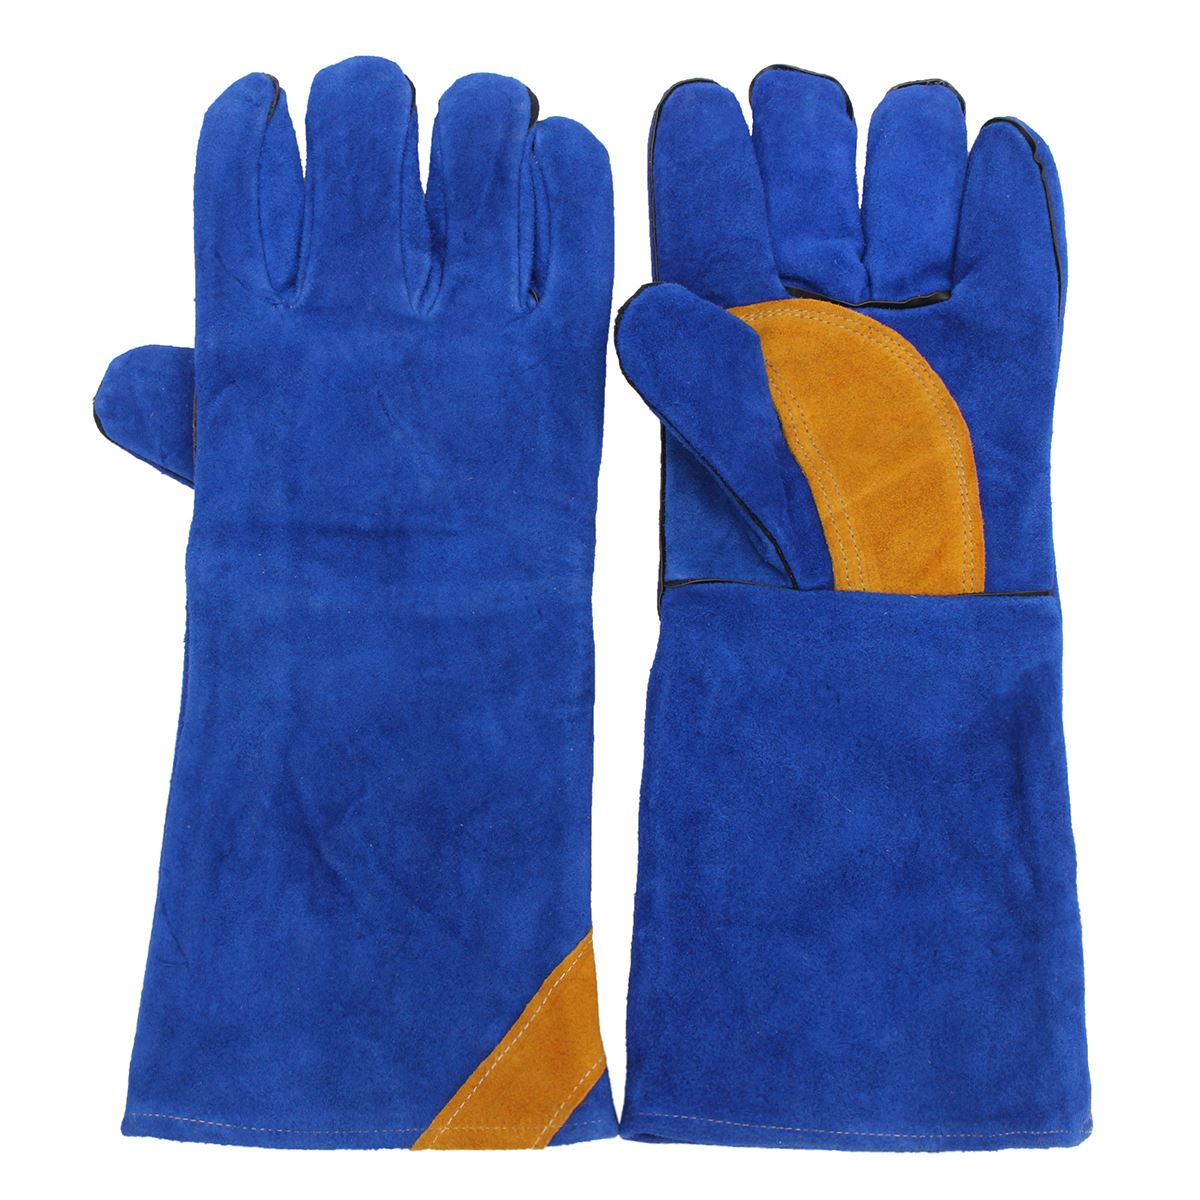 16'' Pair Long Heavy Duty Double Reinforced  Welding Gauntlets Welder Gloves Safety Gloves welder machine plasma cutter welder mask for welder machine